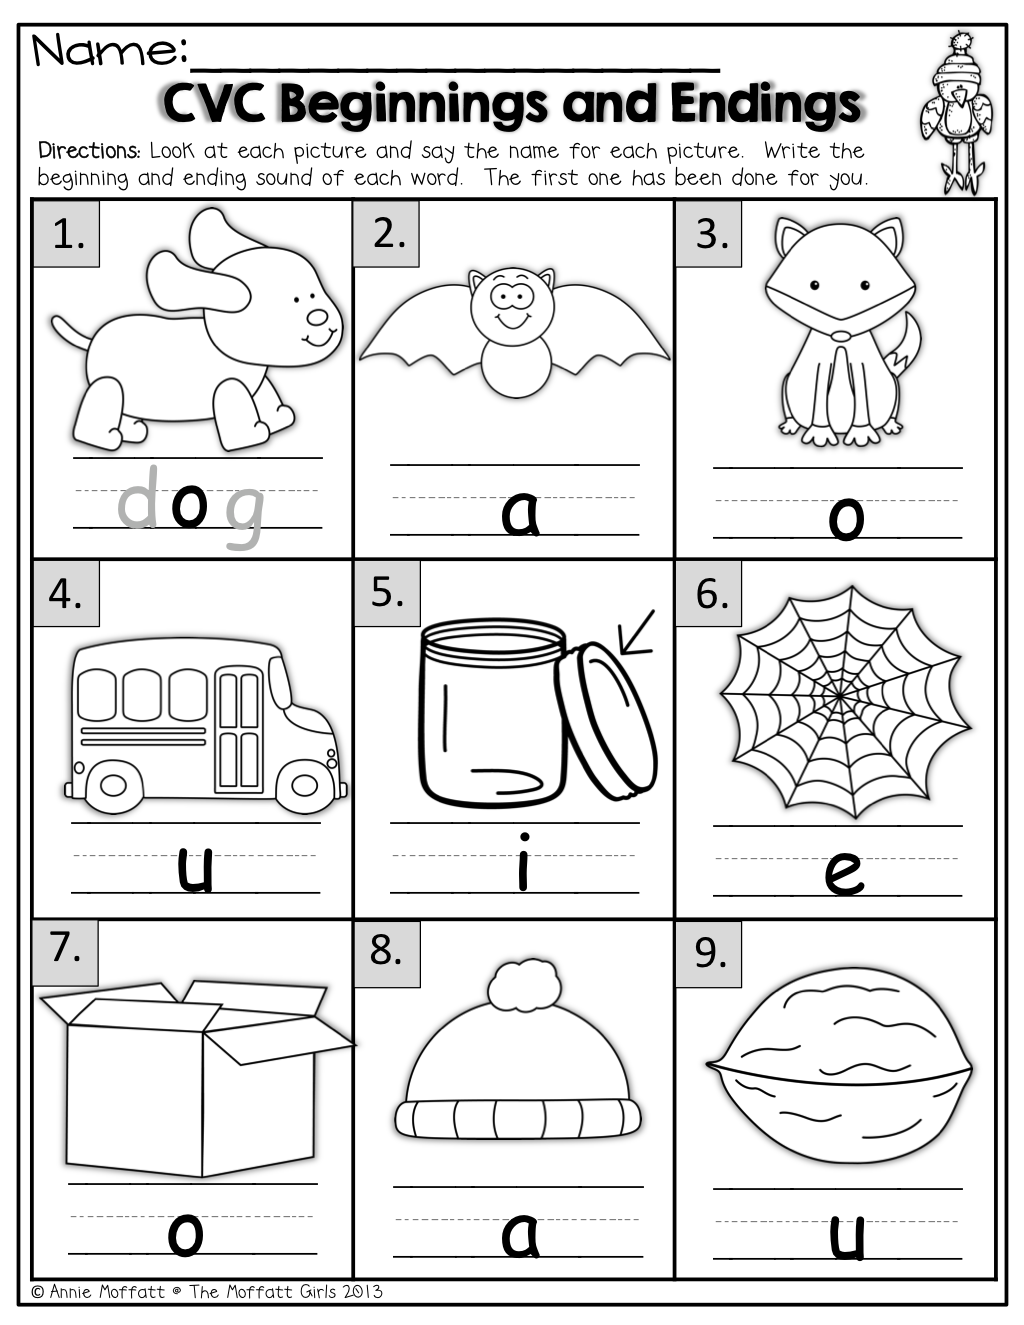 worksheet Beginning And Ending Sounds Worksheets freebie a packet of no prep printables to help make it winter beginning and ending sounds